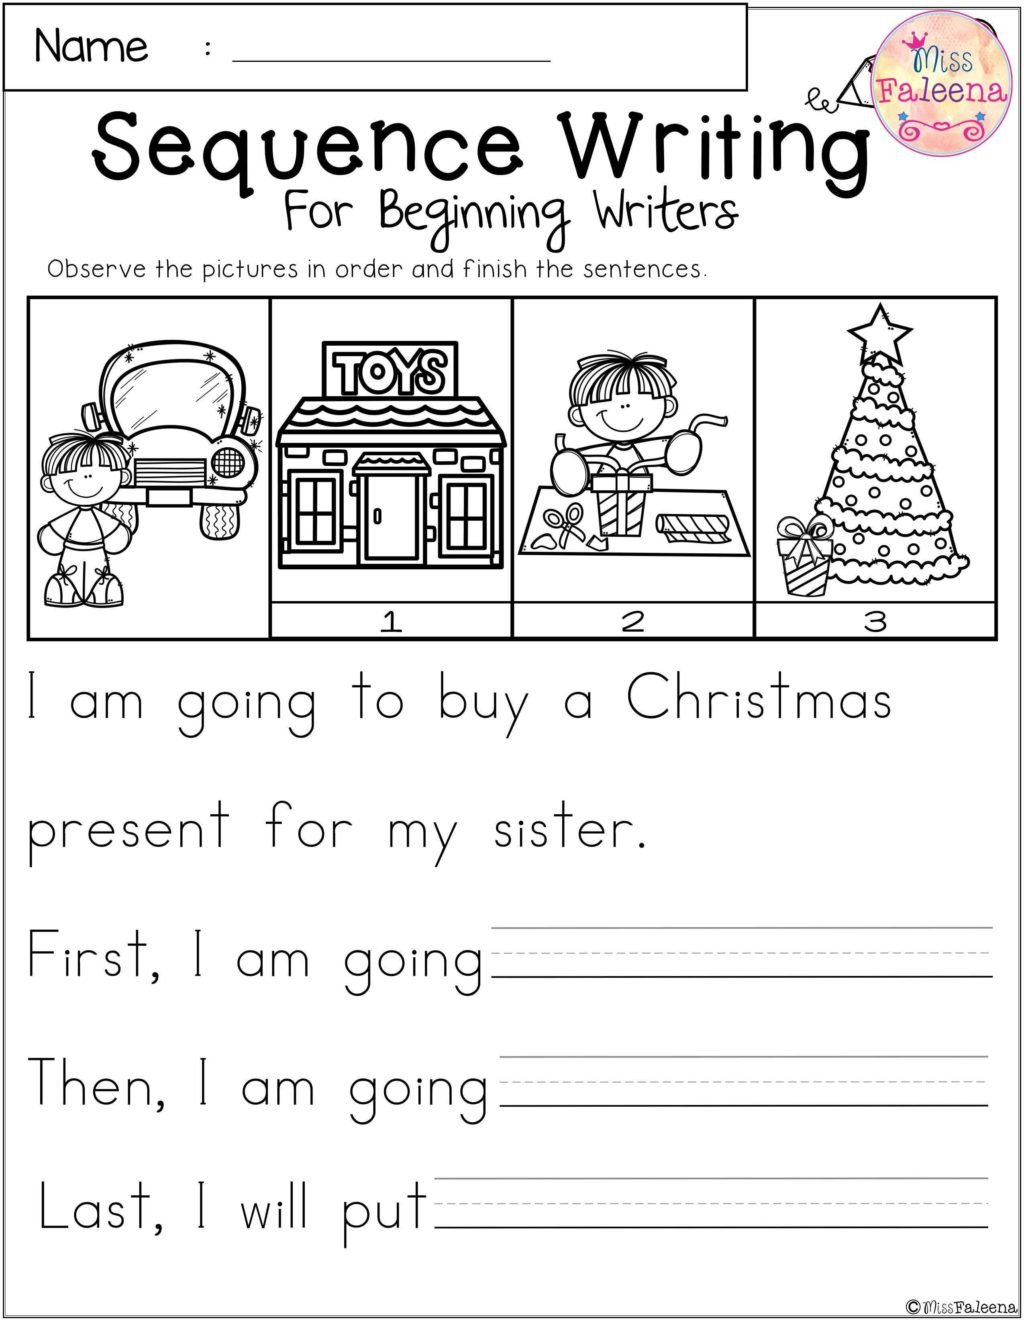 kindergarten language arts worksheets december sequence writing for beginning writers picture inspirations worksheet 1024x1325